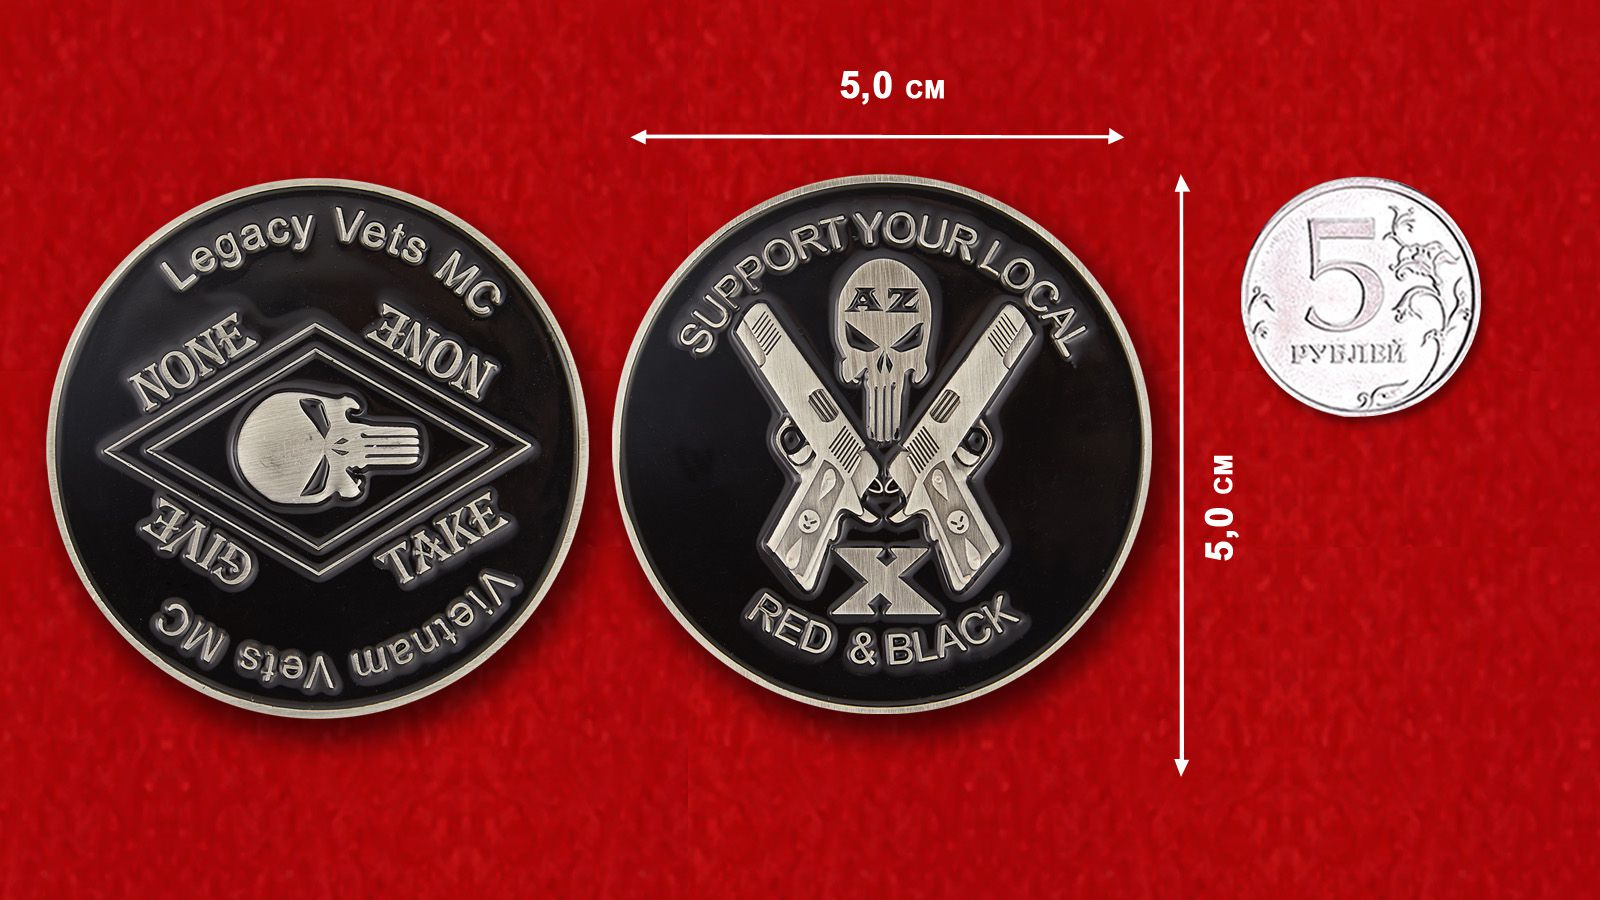 Challenge coin Vietnam Veterans motorcycle club - comparative size